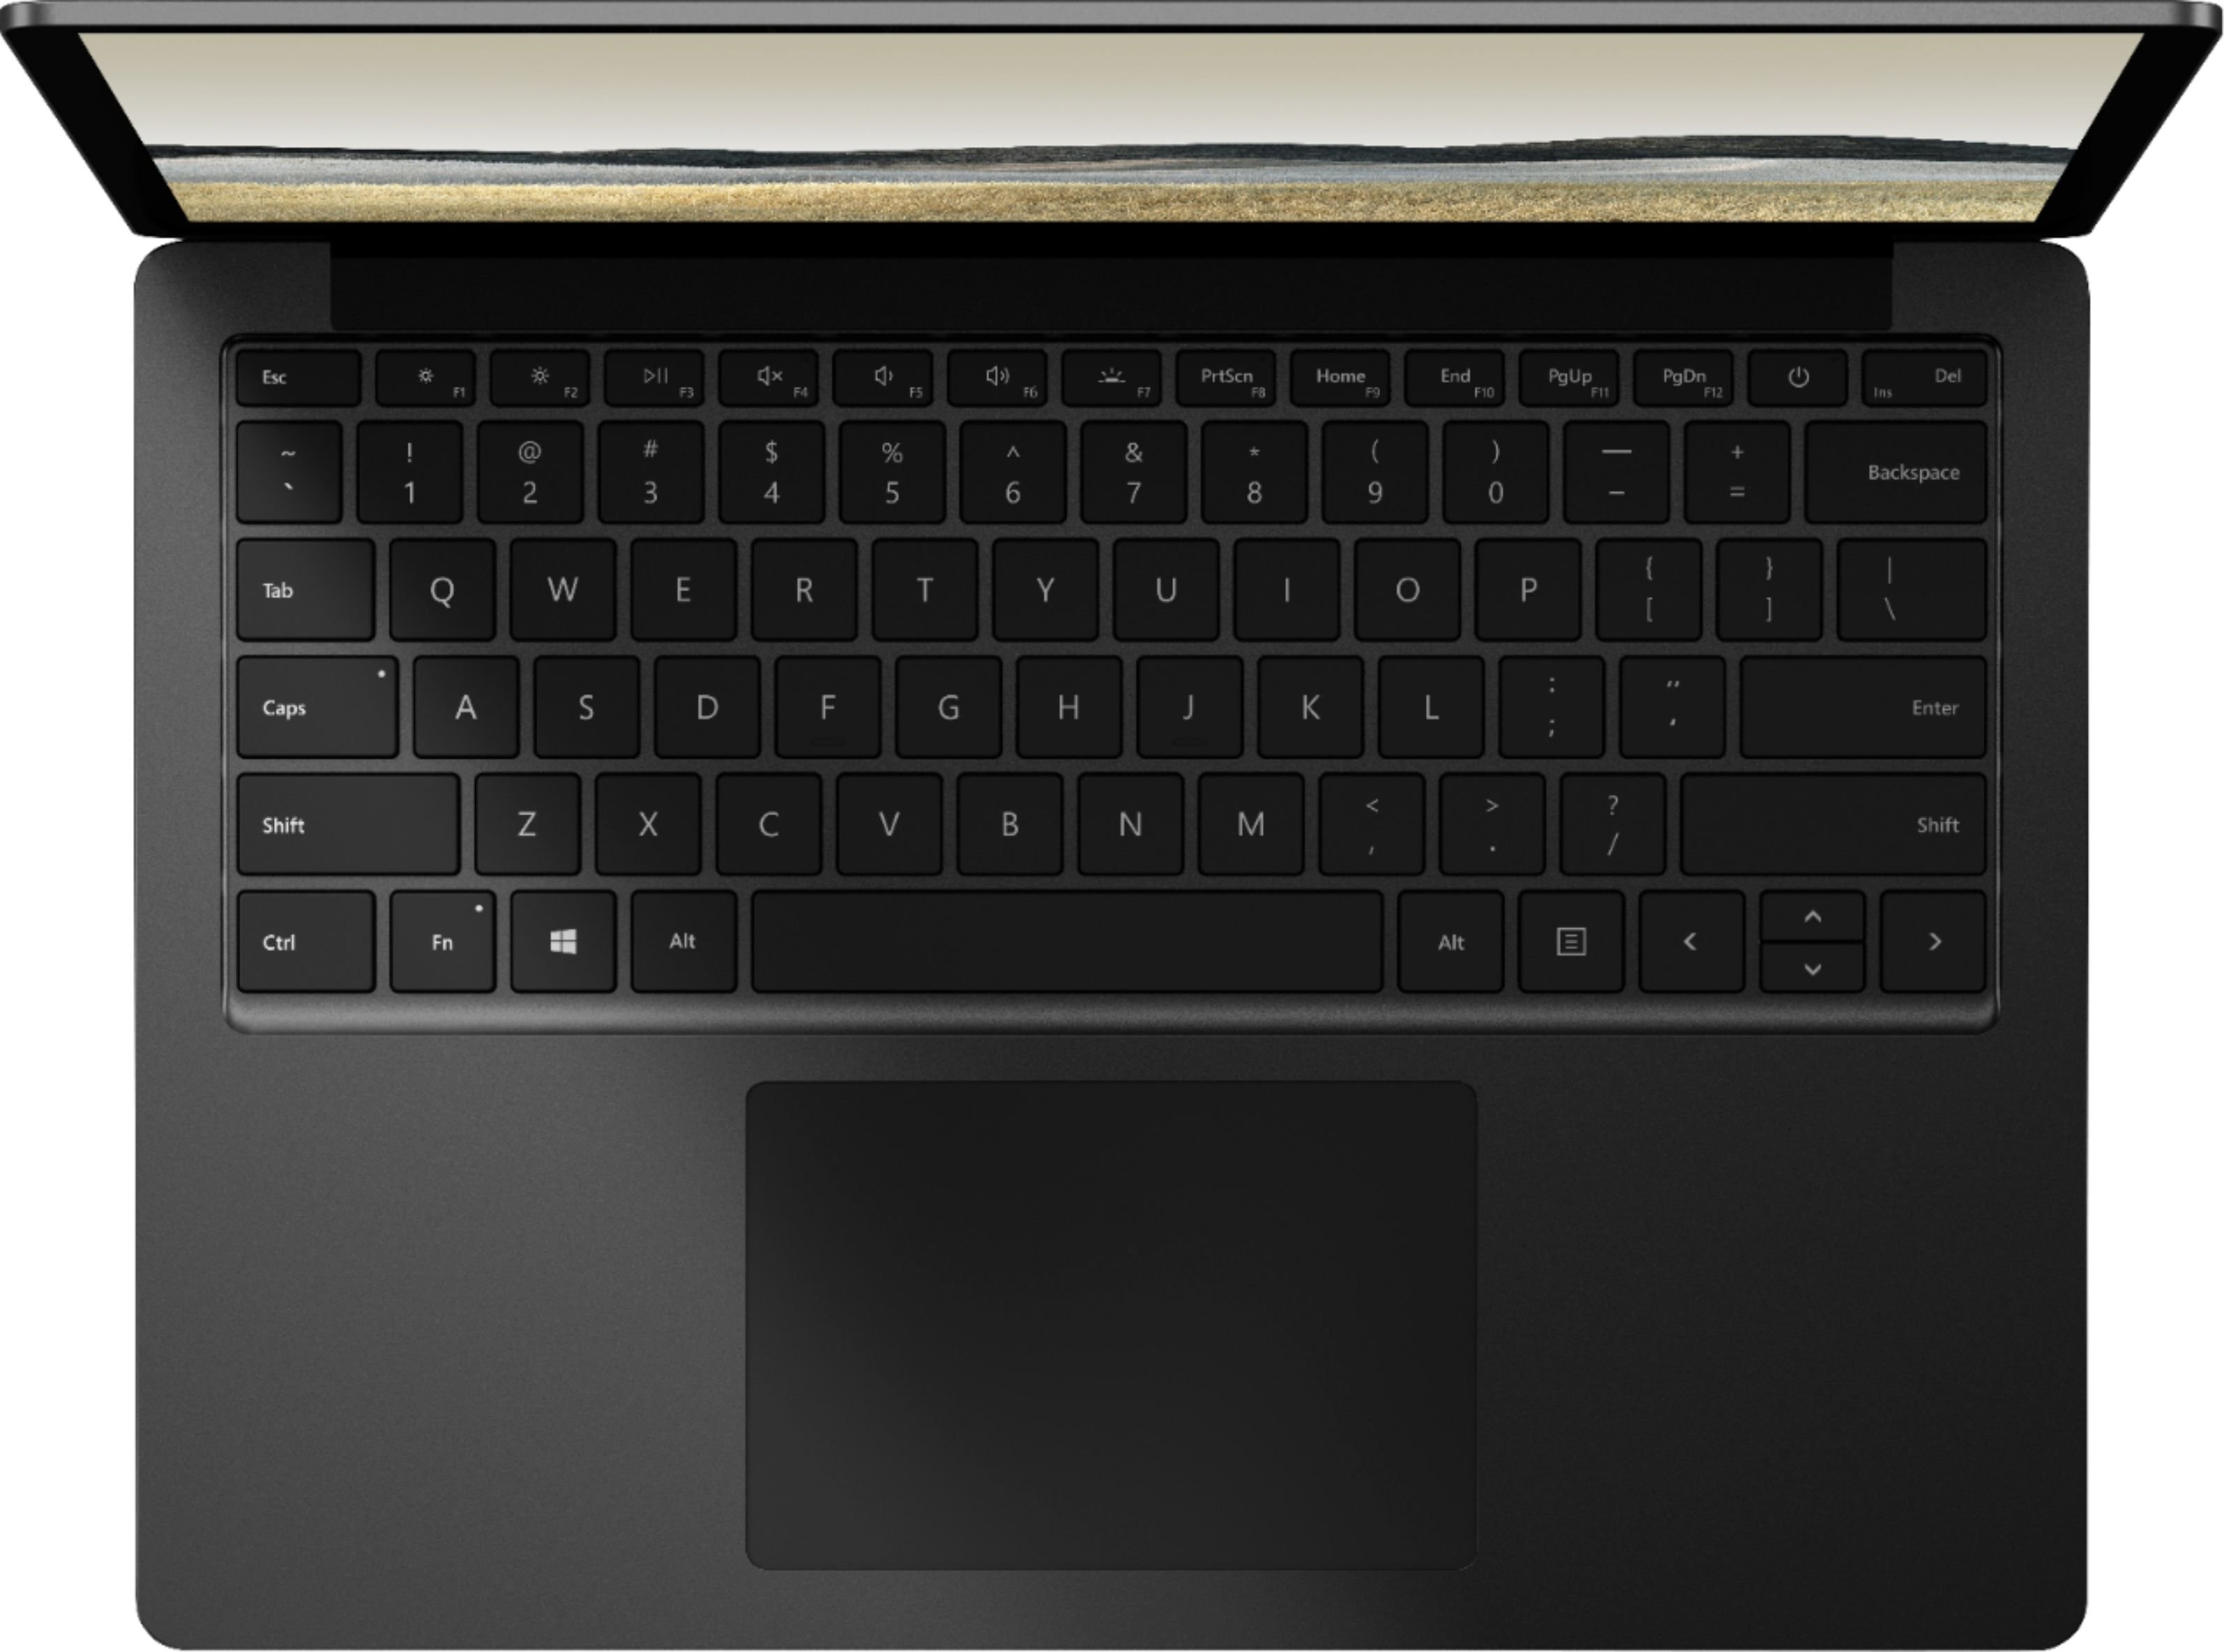 Microsoft Surface lineup leaks ahead of Wednesday's event - Laptop